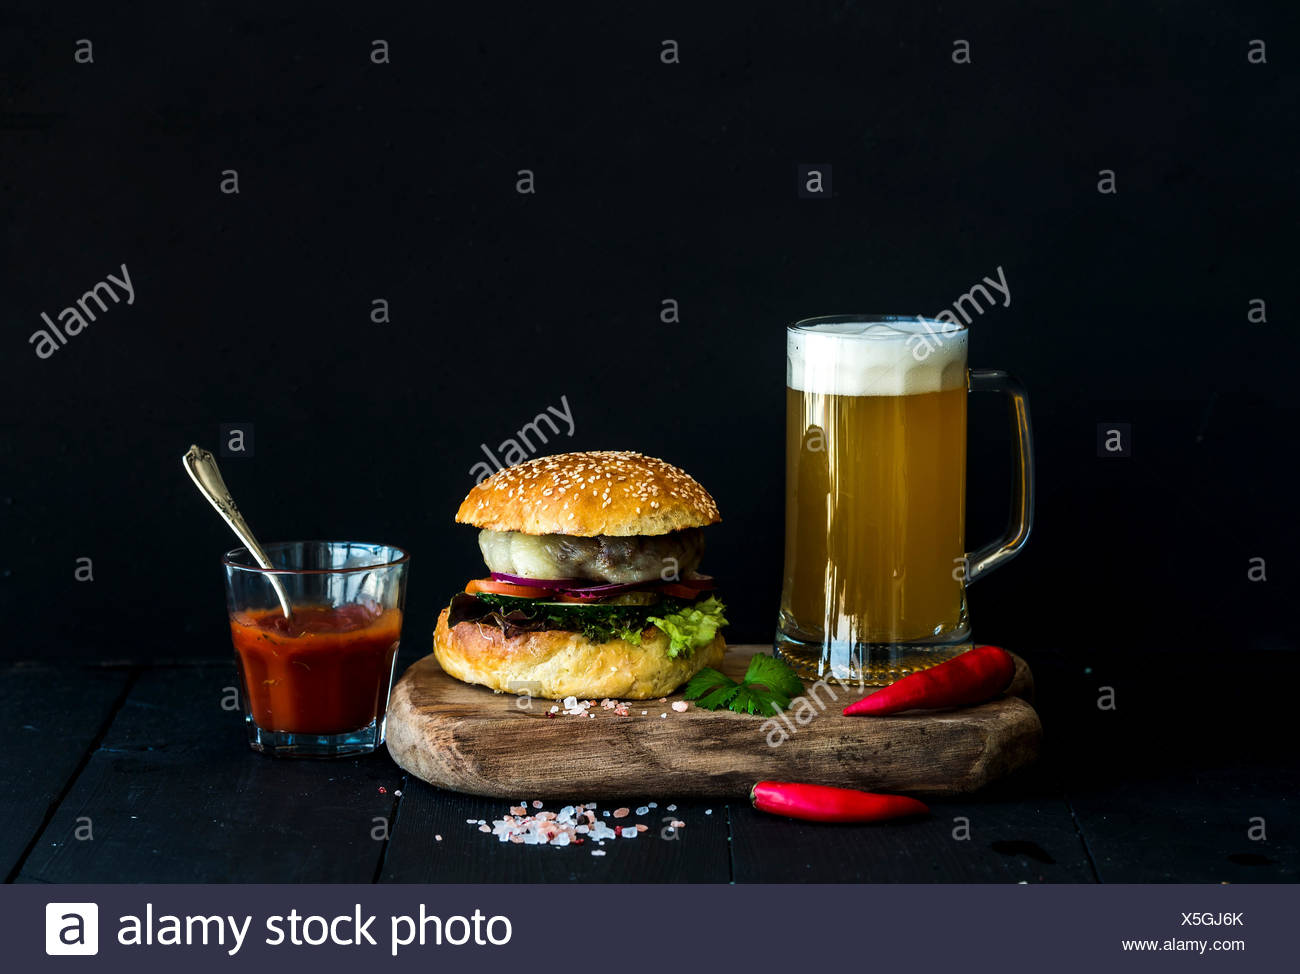 Fresh homemade burger on wooden serving board with spicy tomato sauce, sea salt, herbs and mug of light beer over black  backgro - Stock Image